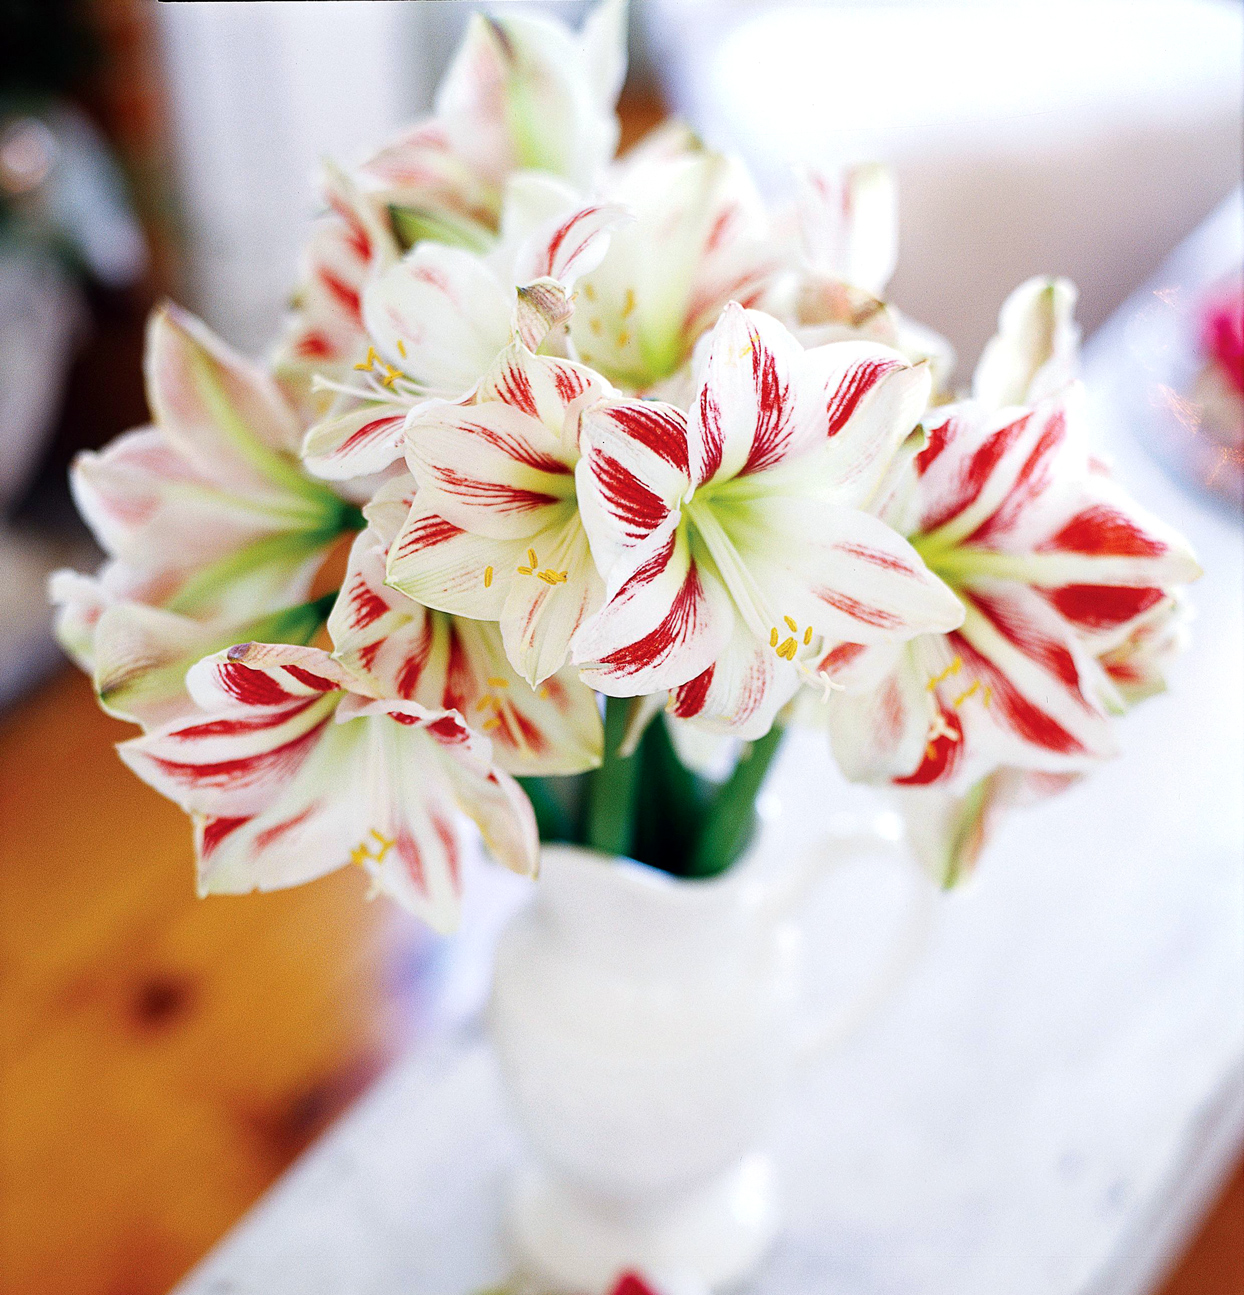 Red-and-White Amaryllis